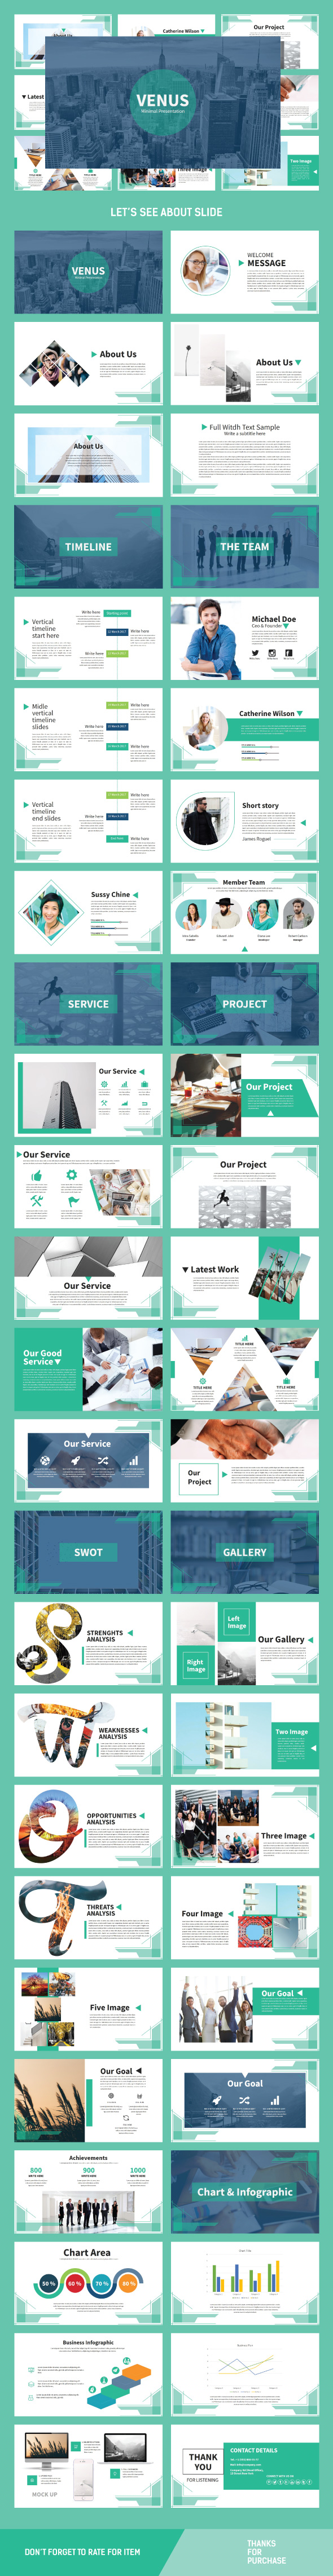 Venus Multipurpose Template - Business PowerPoint Templates